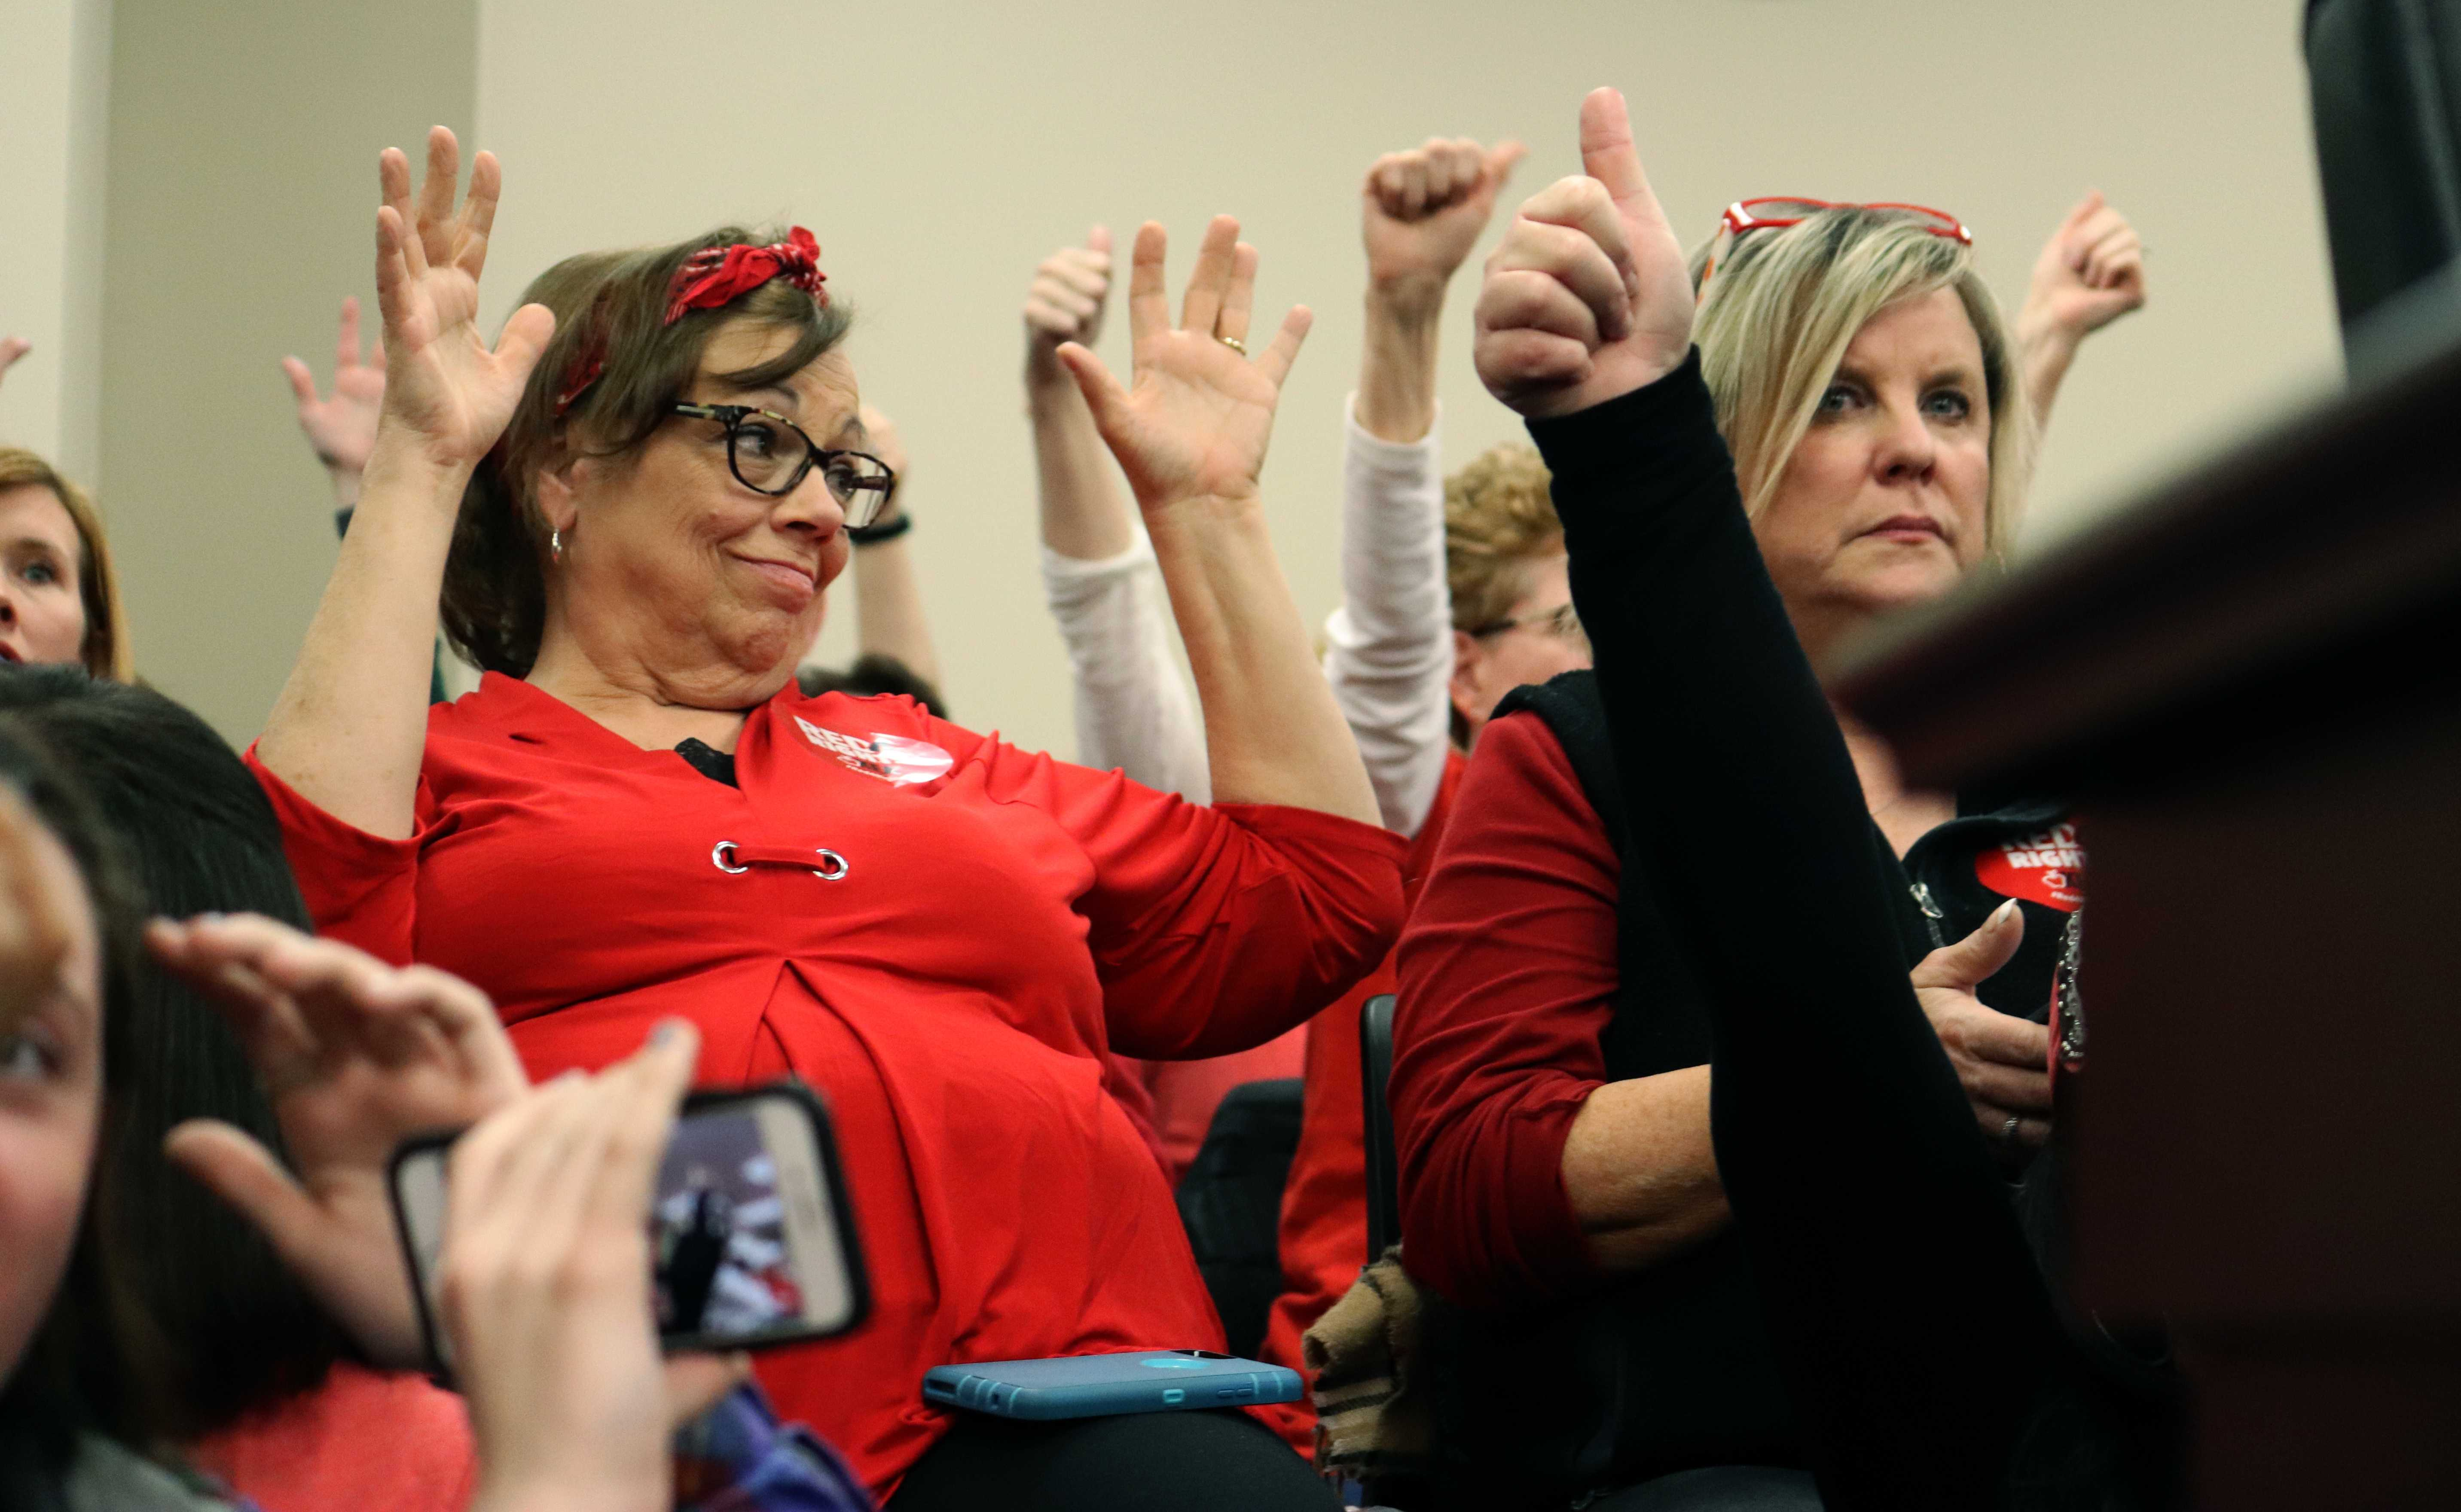 Since the crowd had to stay silent during the meeting, protesters raise their hands to support an opponent of HB 525. Photo by Phoebe Monsour.